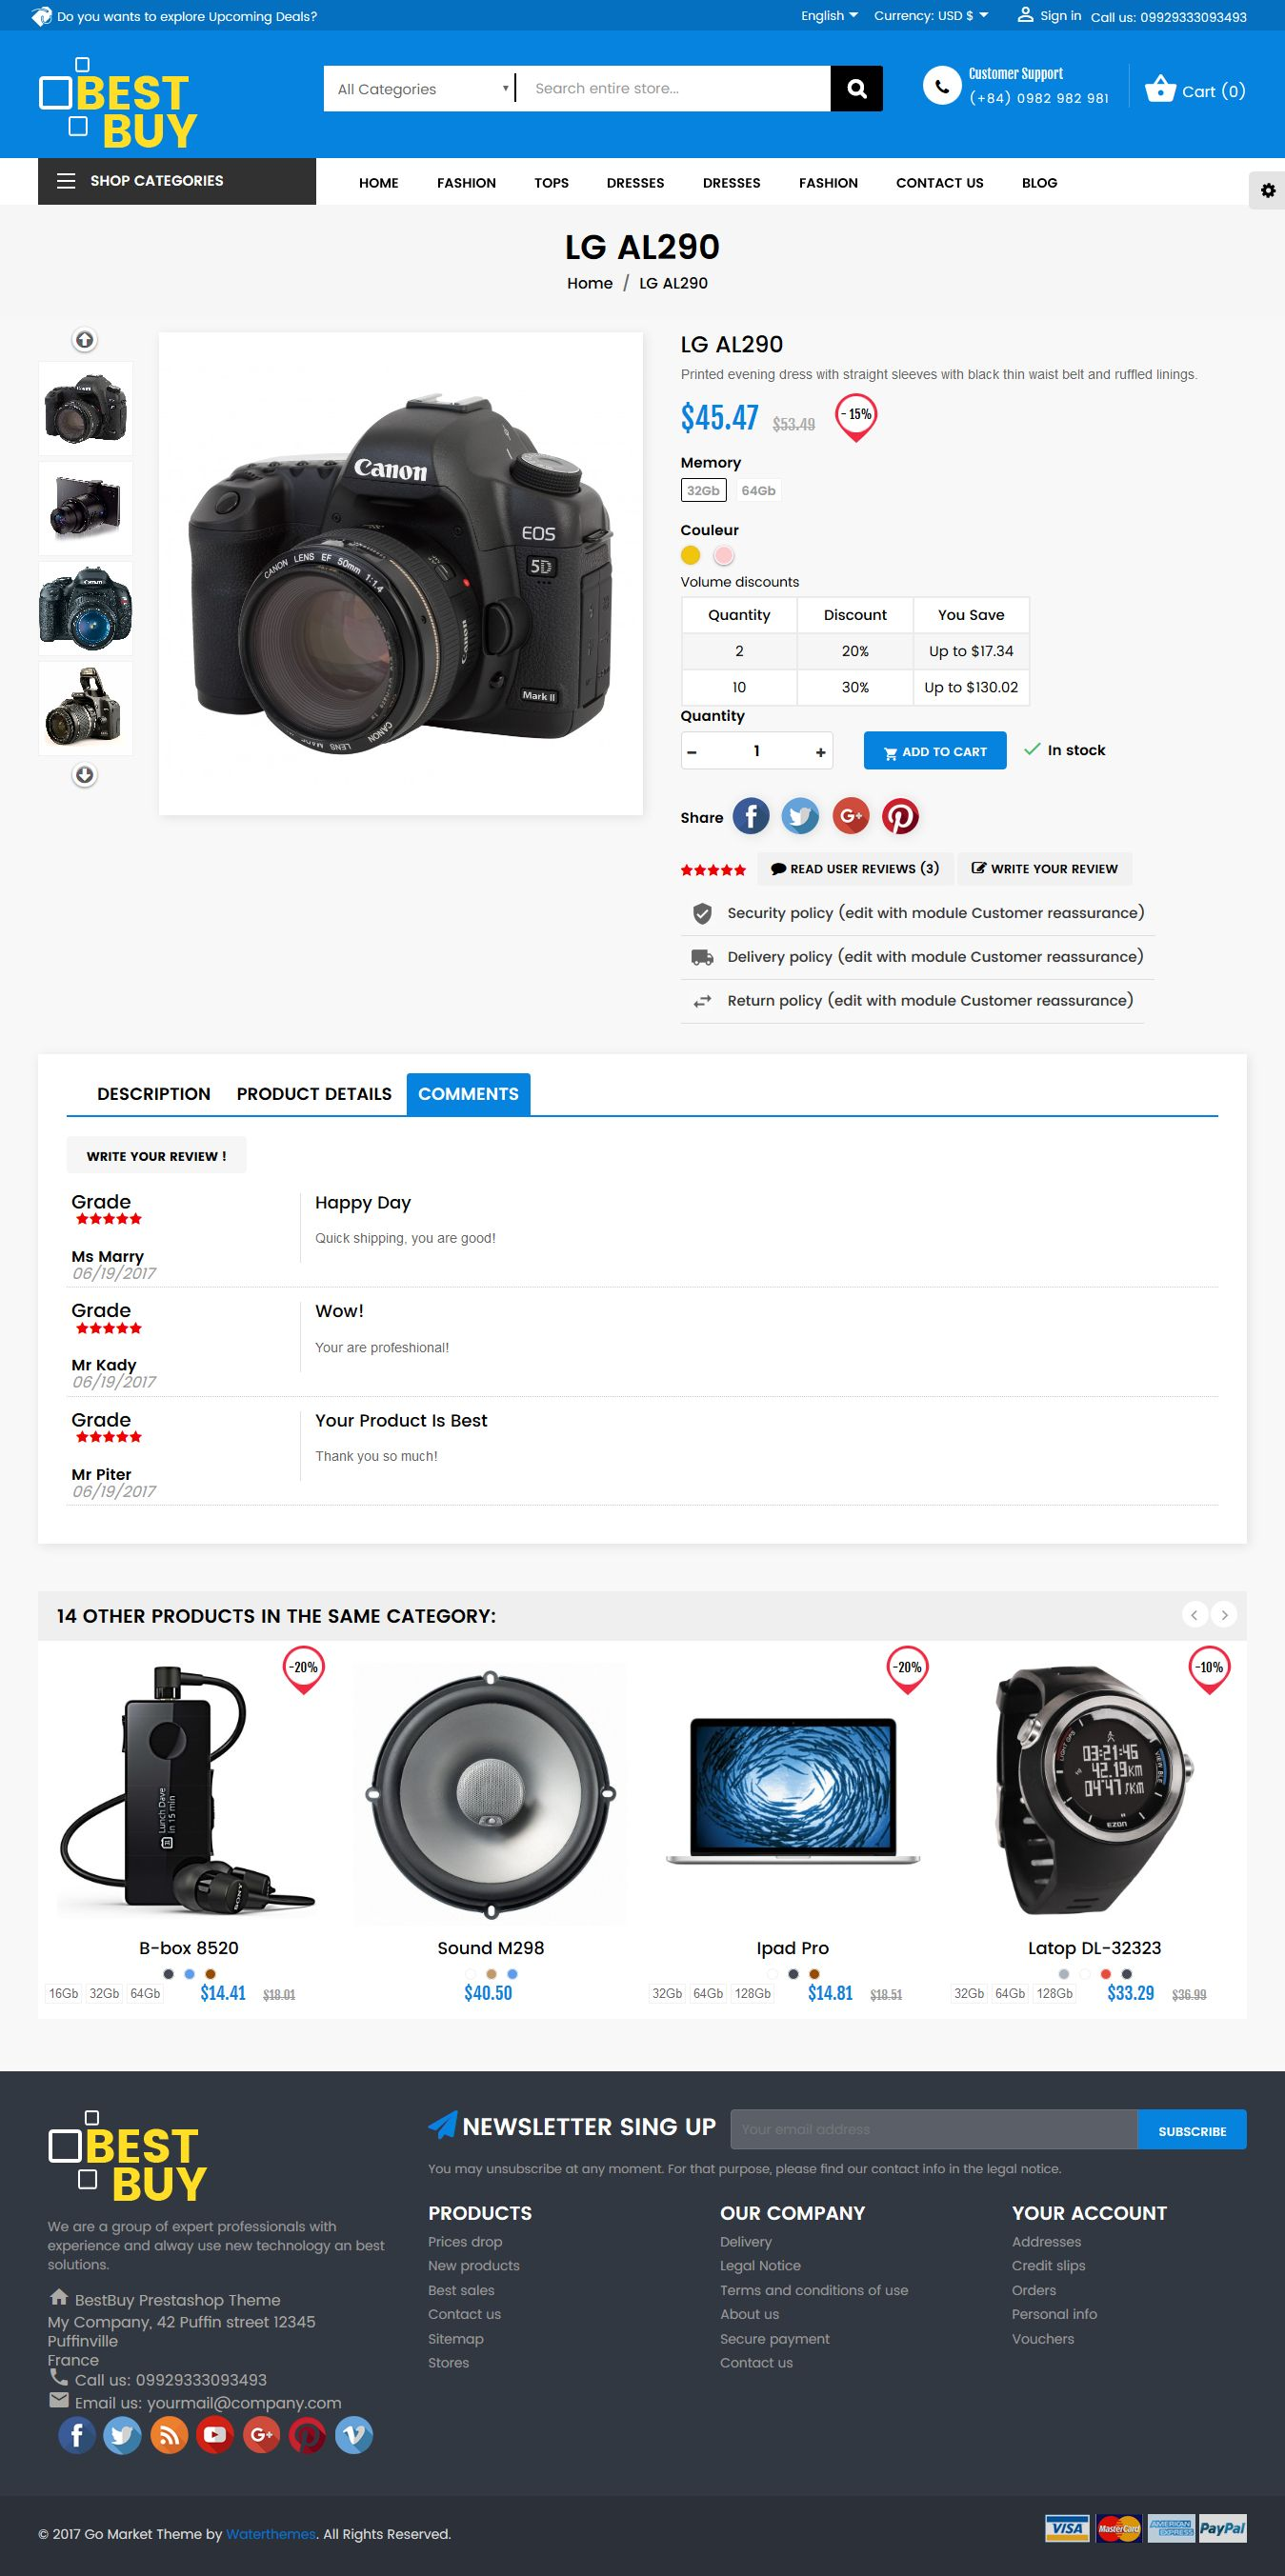 Best Buy PrestaShop Theme Screenshot 5